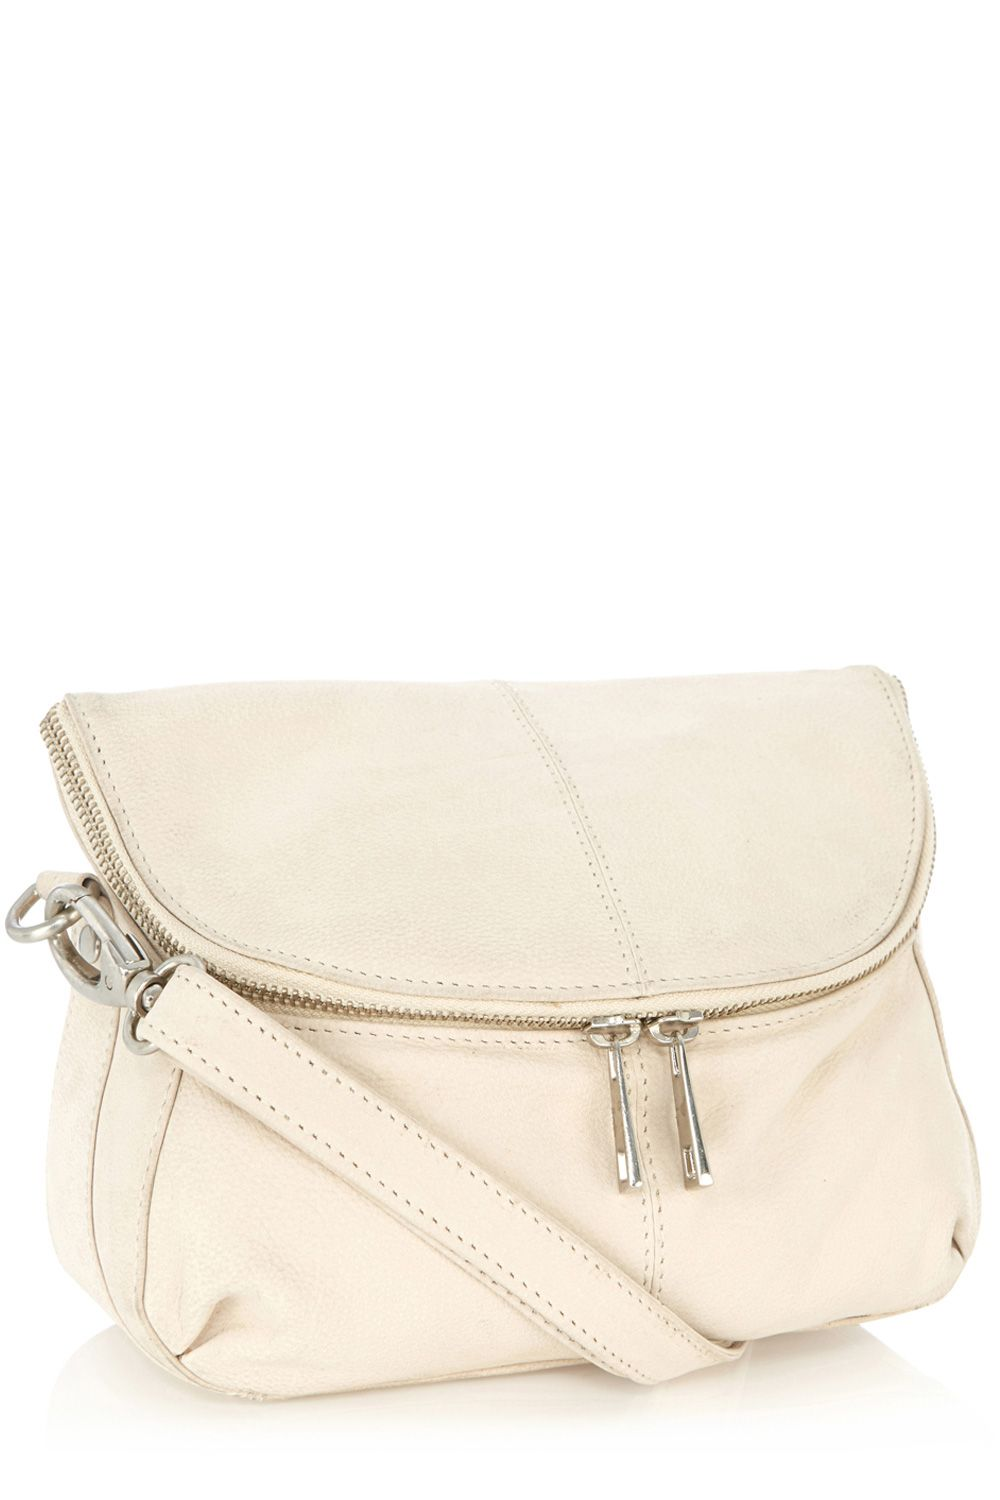 Savannah zip cross body bag